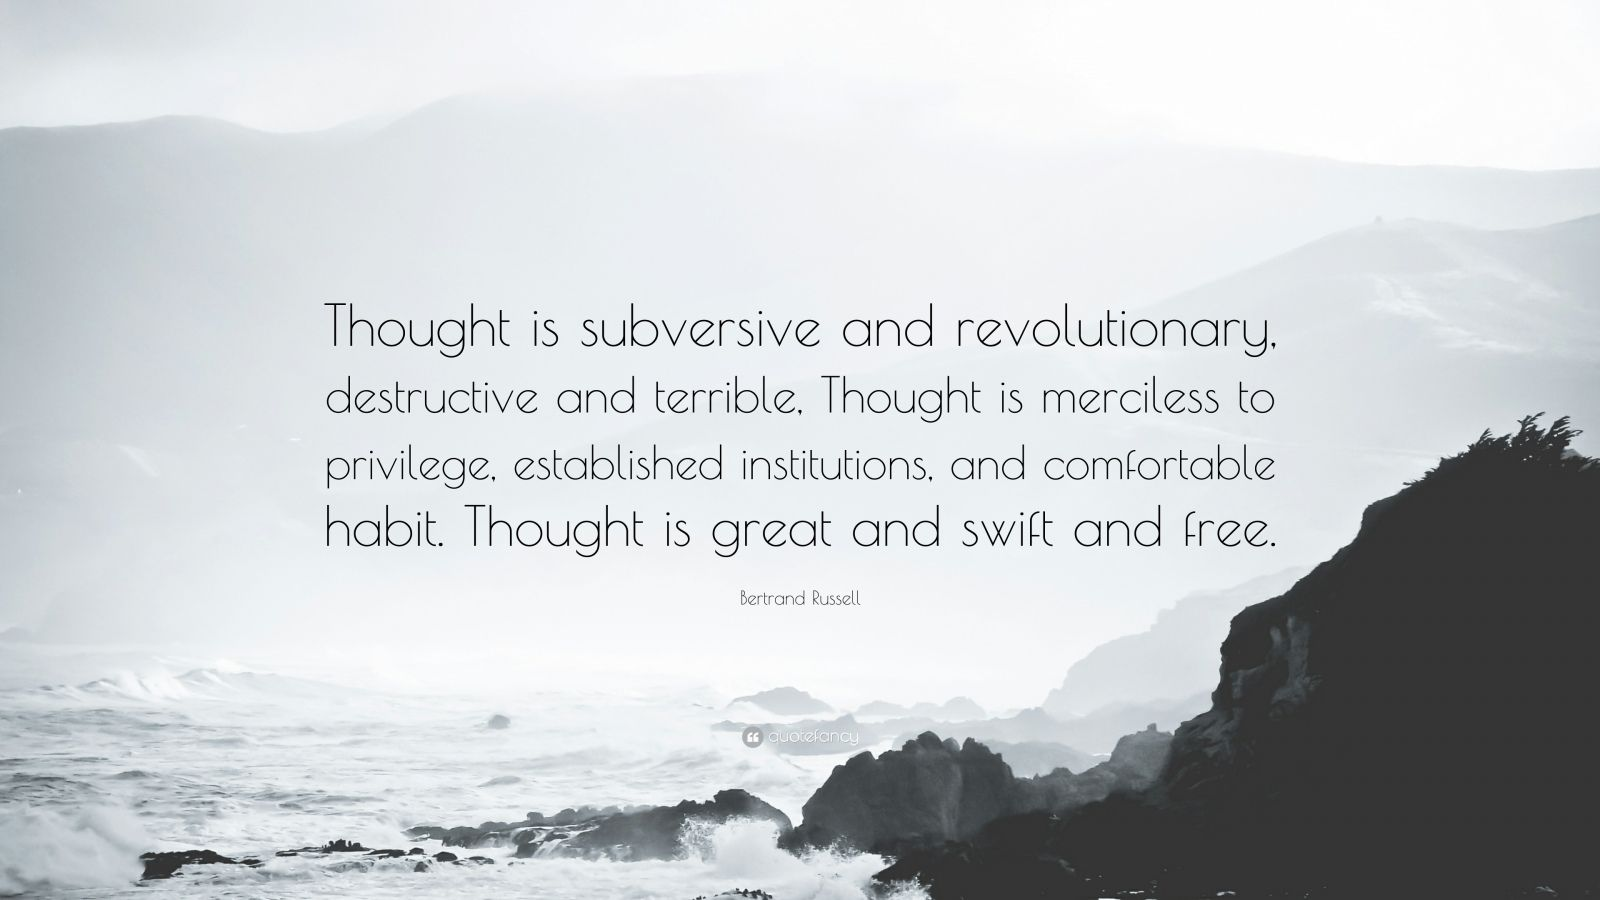 """Bertrand Russell Quote: """"Thought is subversive and revolutionary, destructive and terrible, Thought is merciless to privilege, established institutions, and comfortable habit. Thought is great and swift and free."""""""